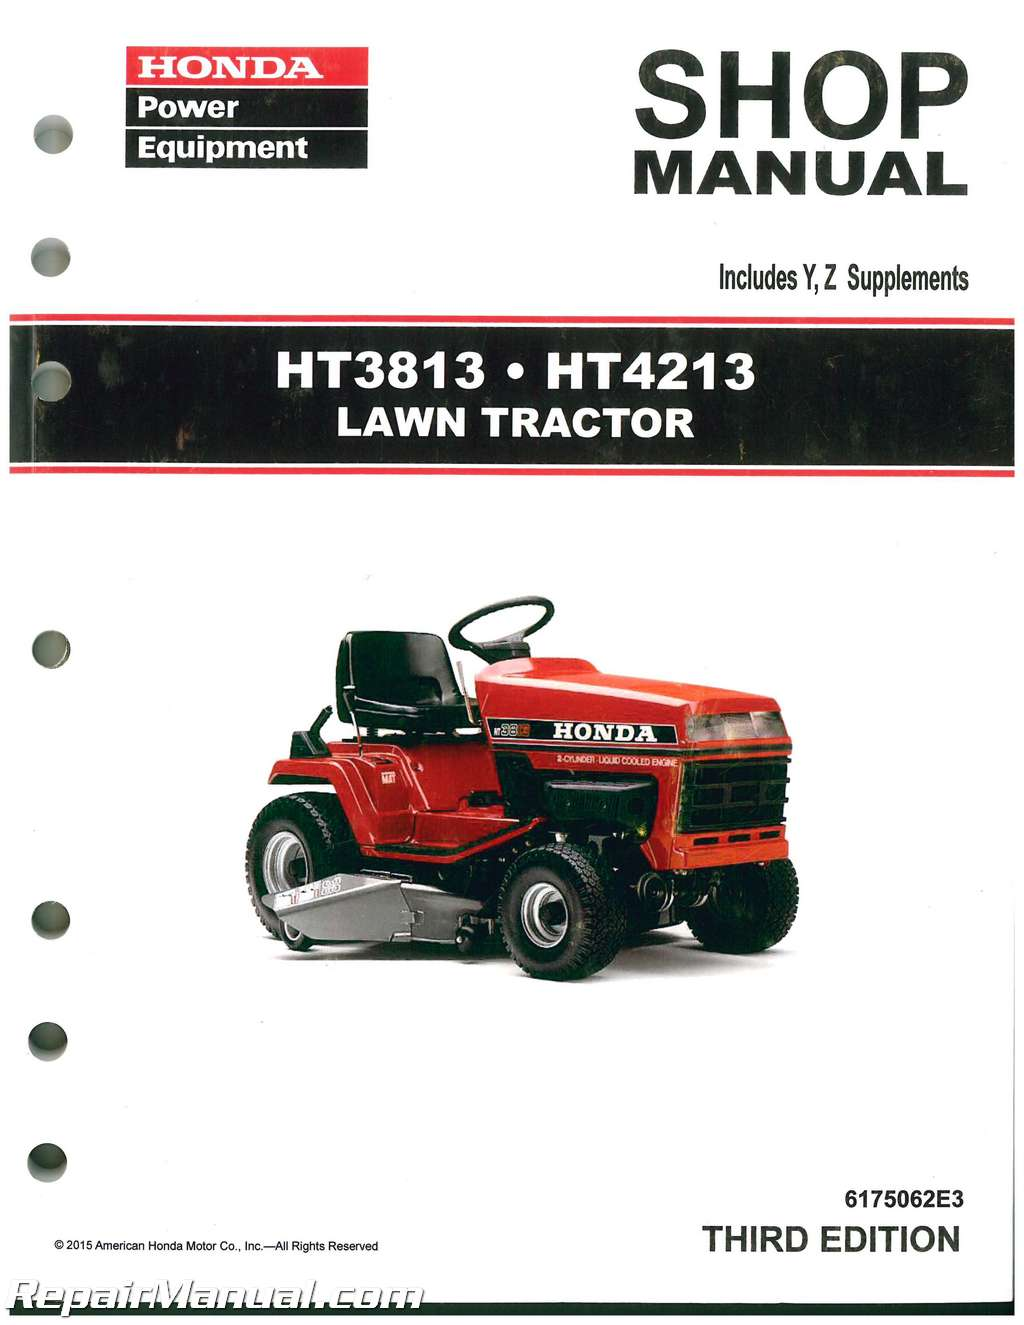 Honda-HT3813-HT4213-Lawn-Tractor-Shop-Manual_003.jpg ...